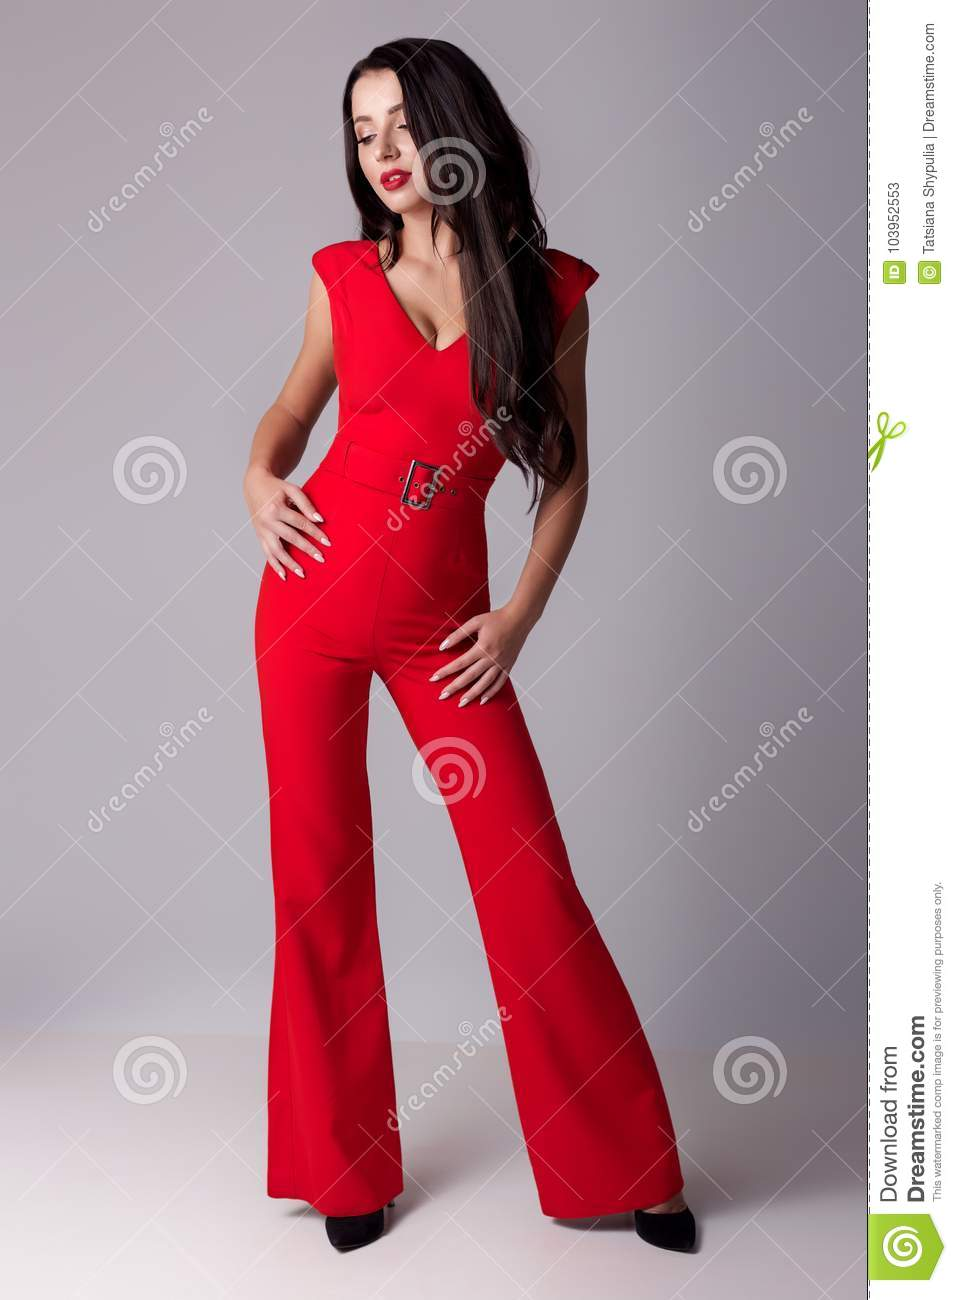 Young beautiful fashionable woman with long dark hair a slender figure in the studio